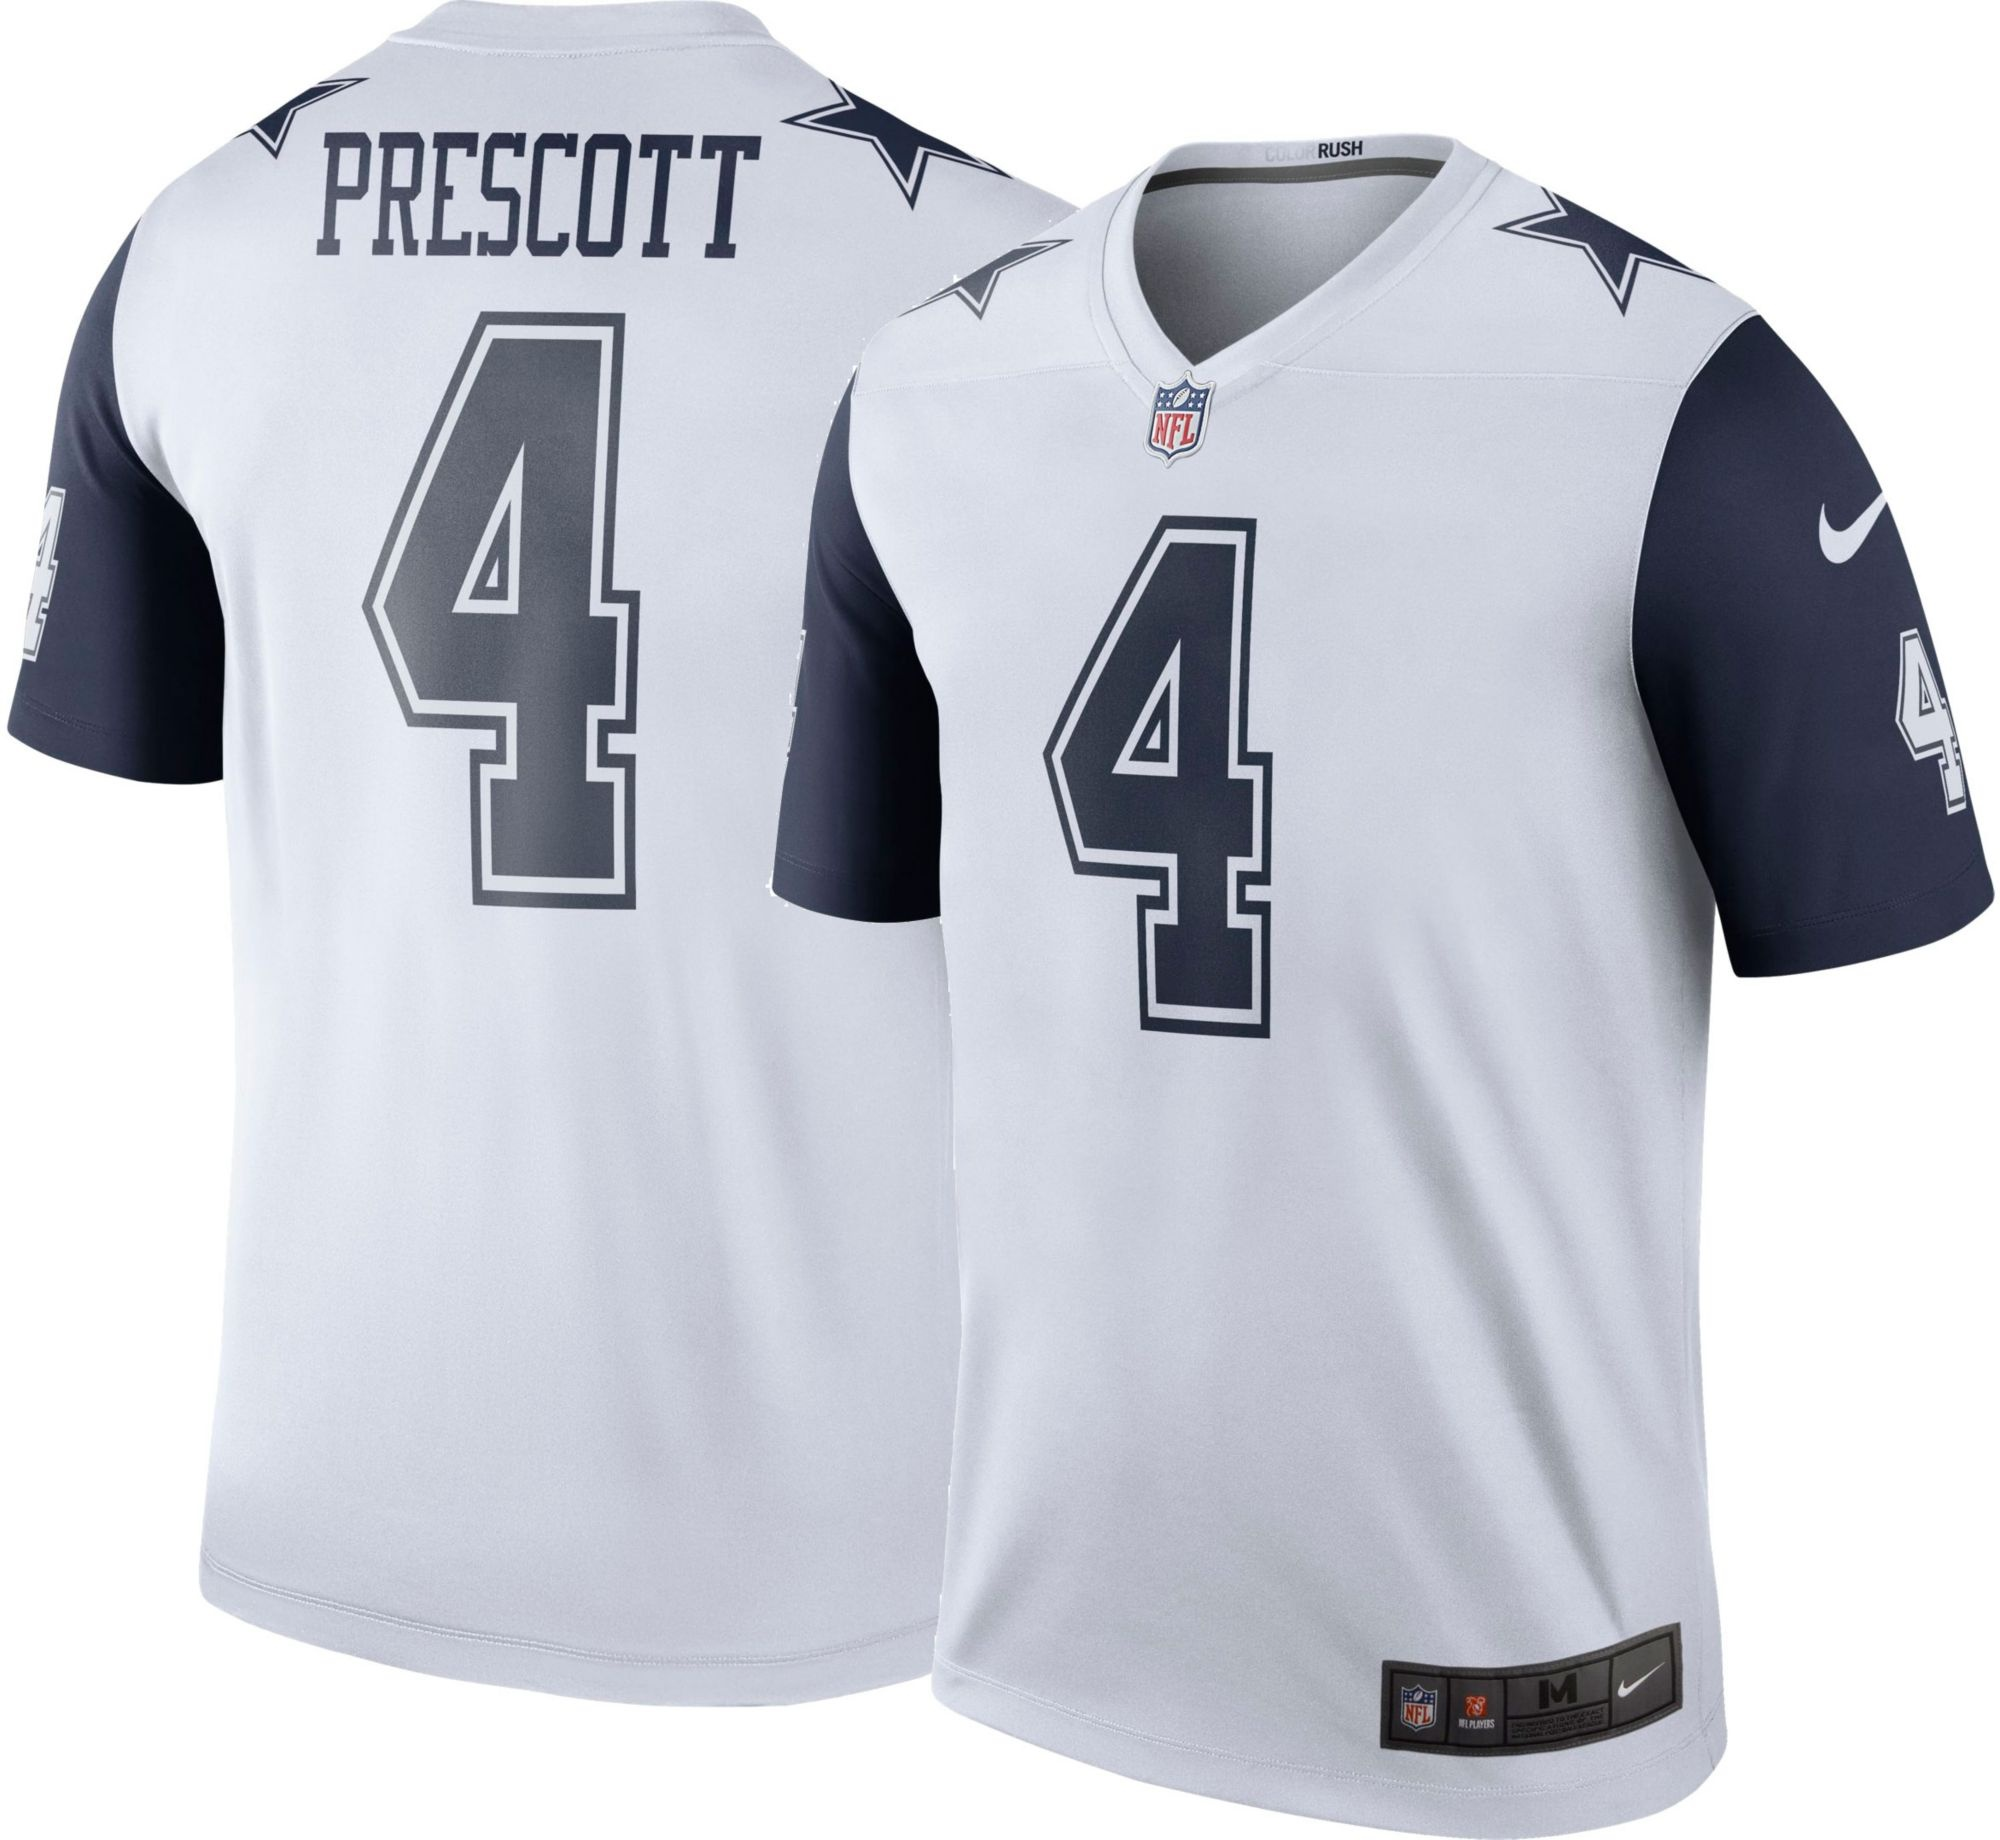 separation shoes 03961 24269 How could I buy Dallas Cowboys jersey cheap